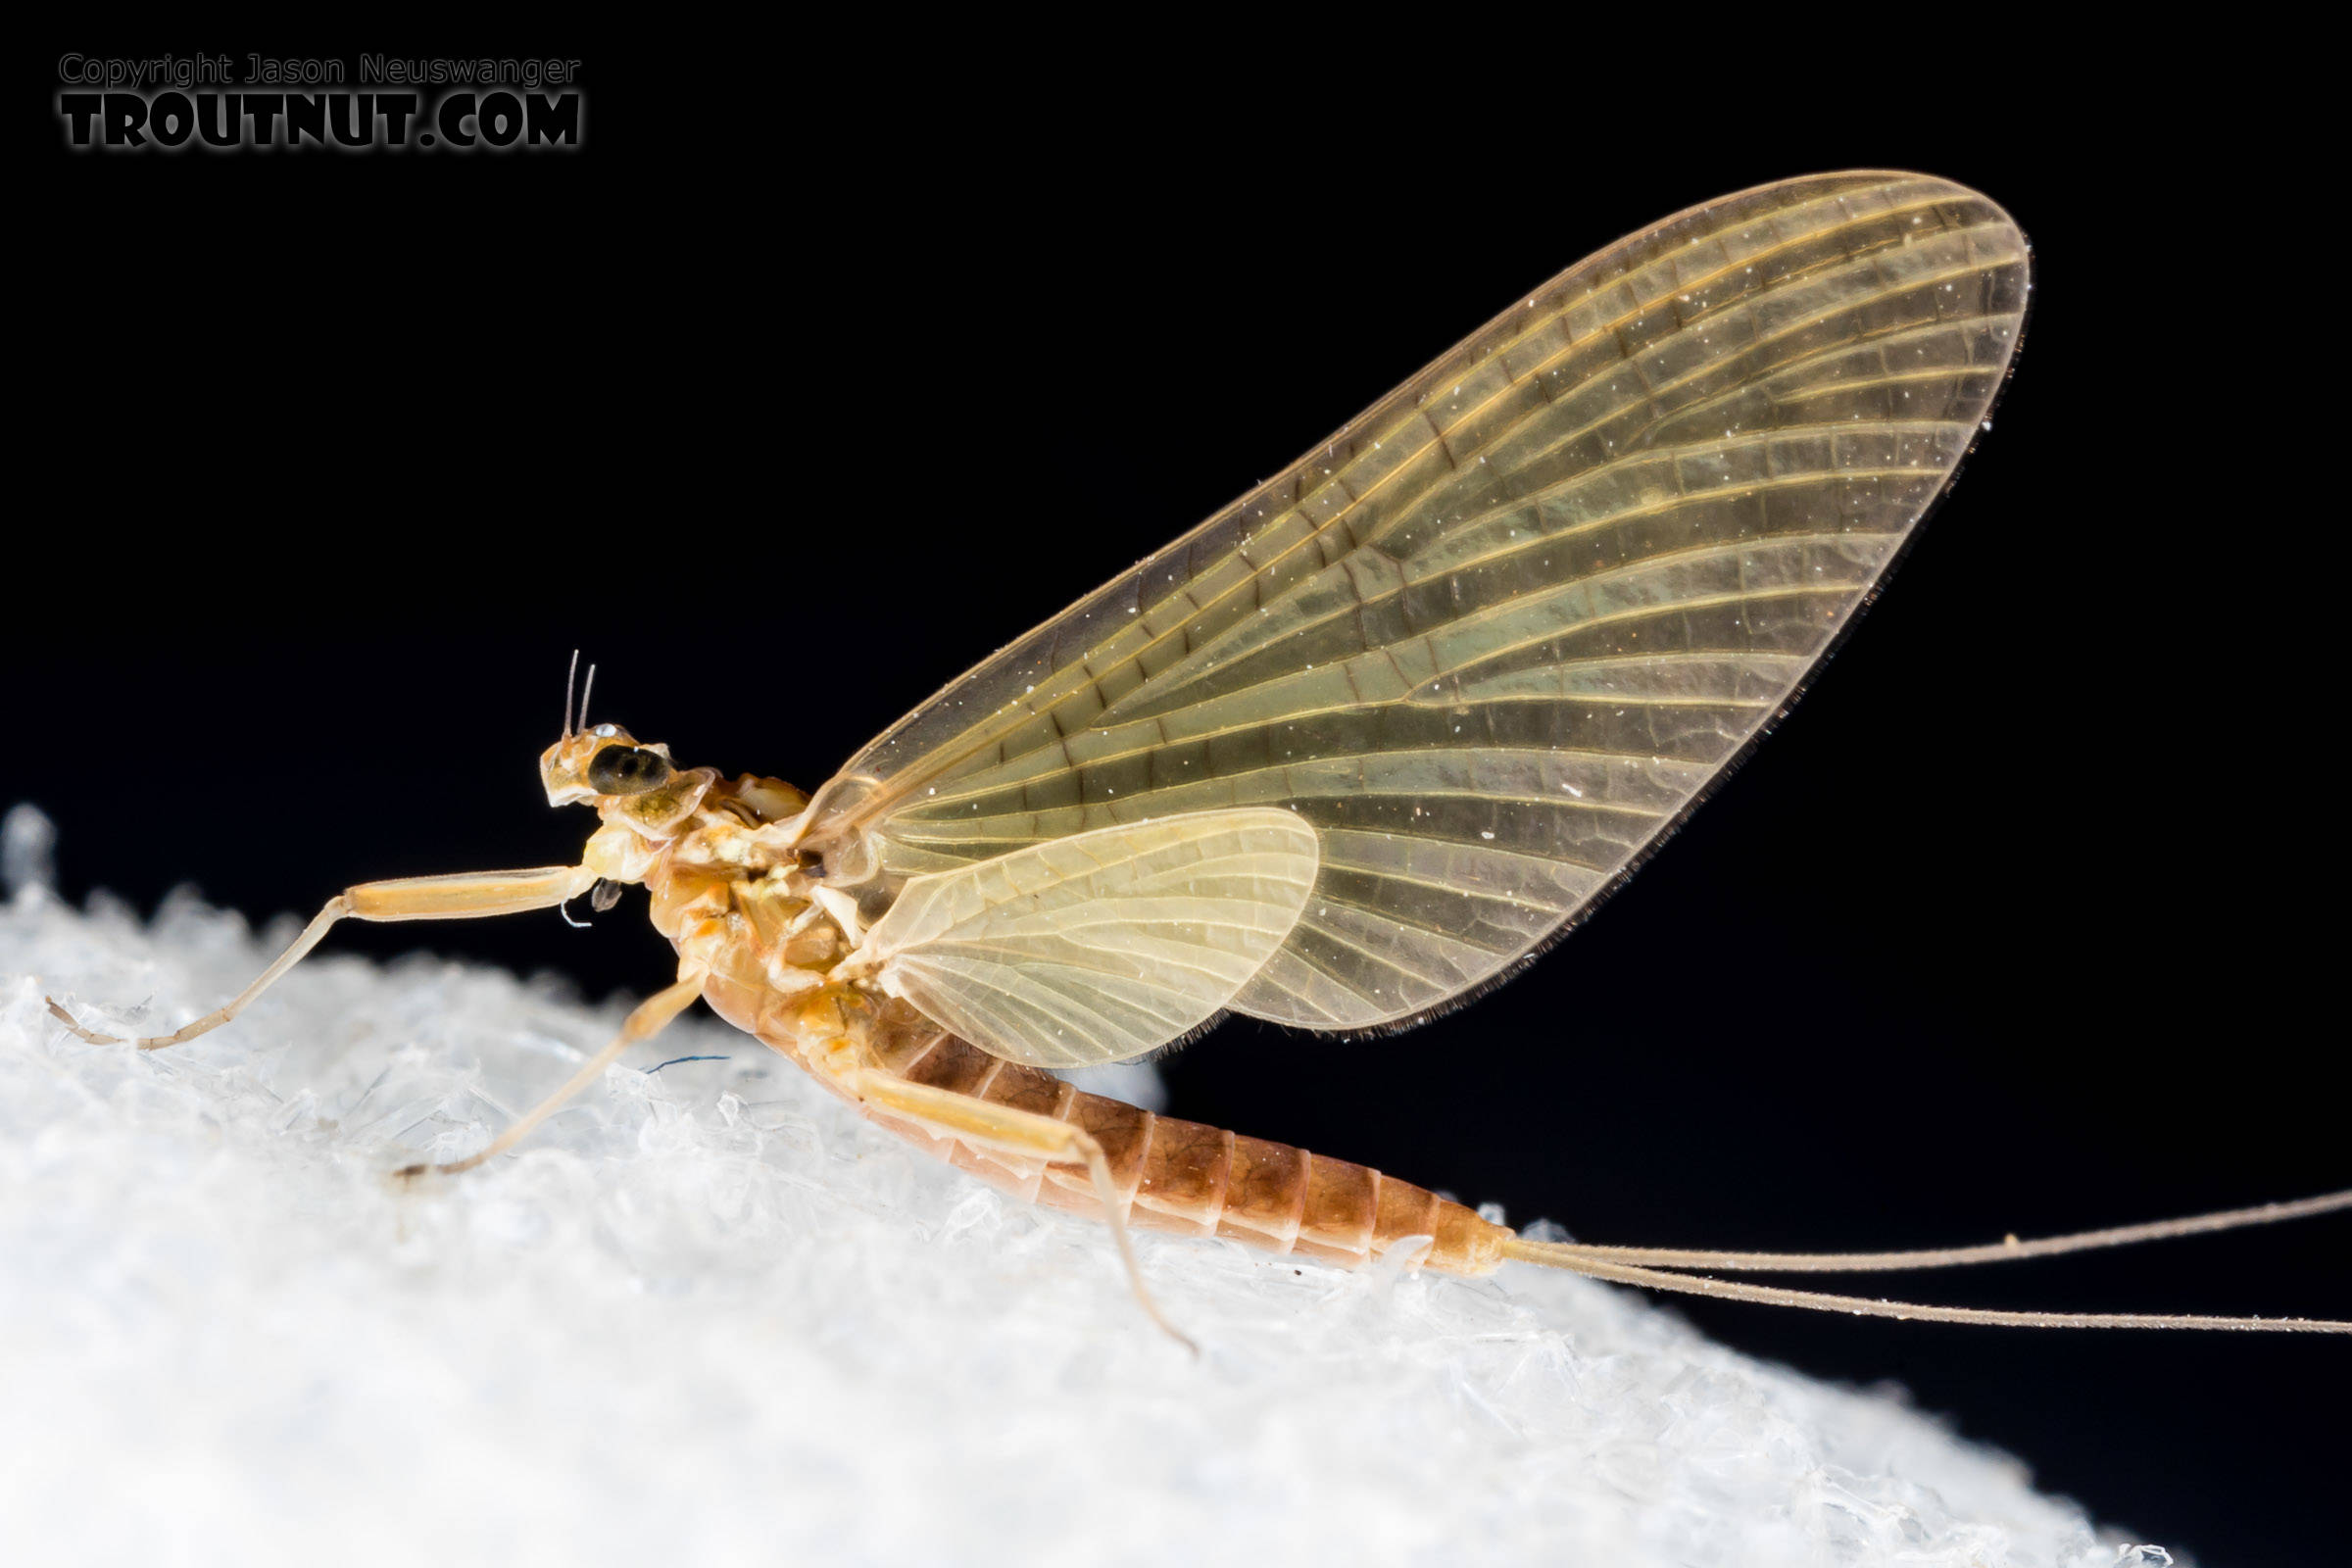 Female Heptageniidae (March Browns, Cahills, Quill Gordons) Mayfly Dun from the South Fork Snoqualmie River in Washington